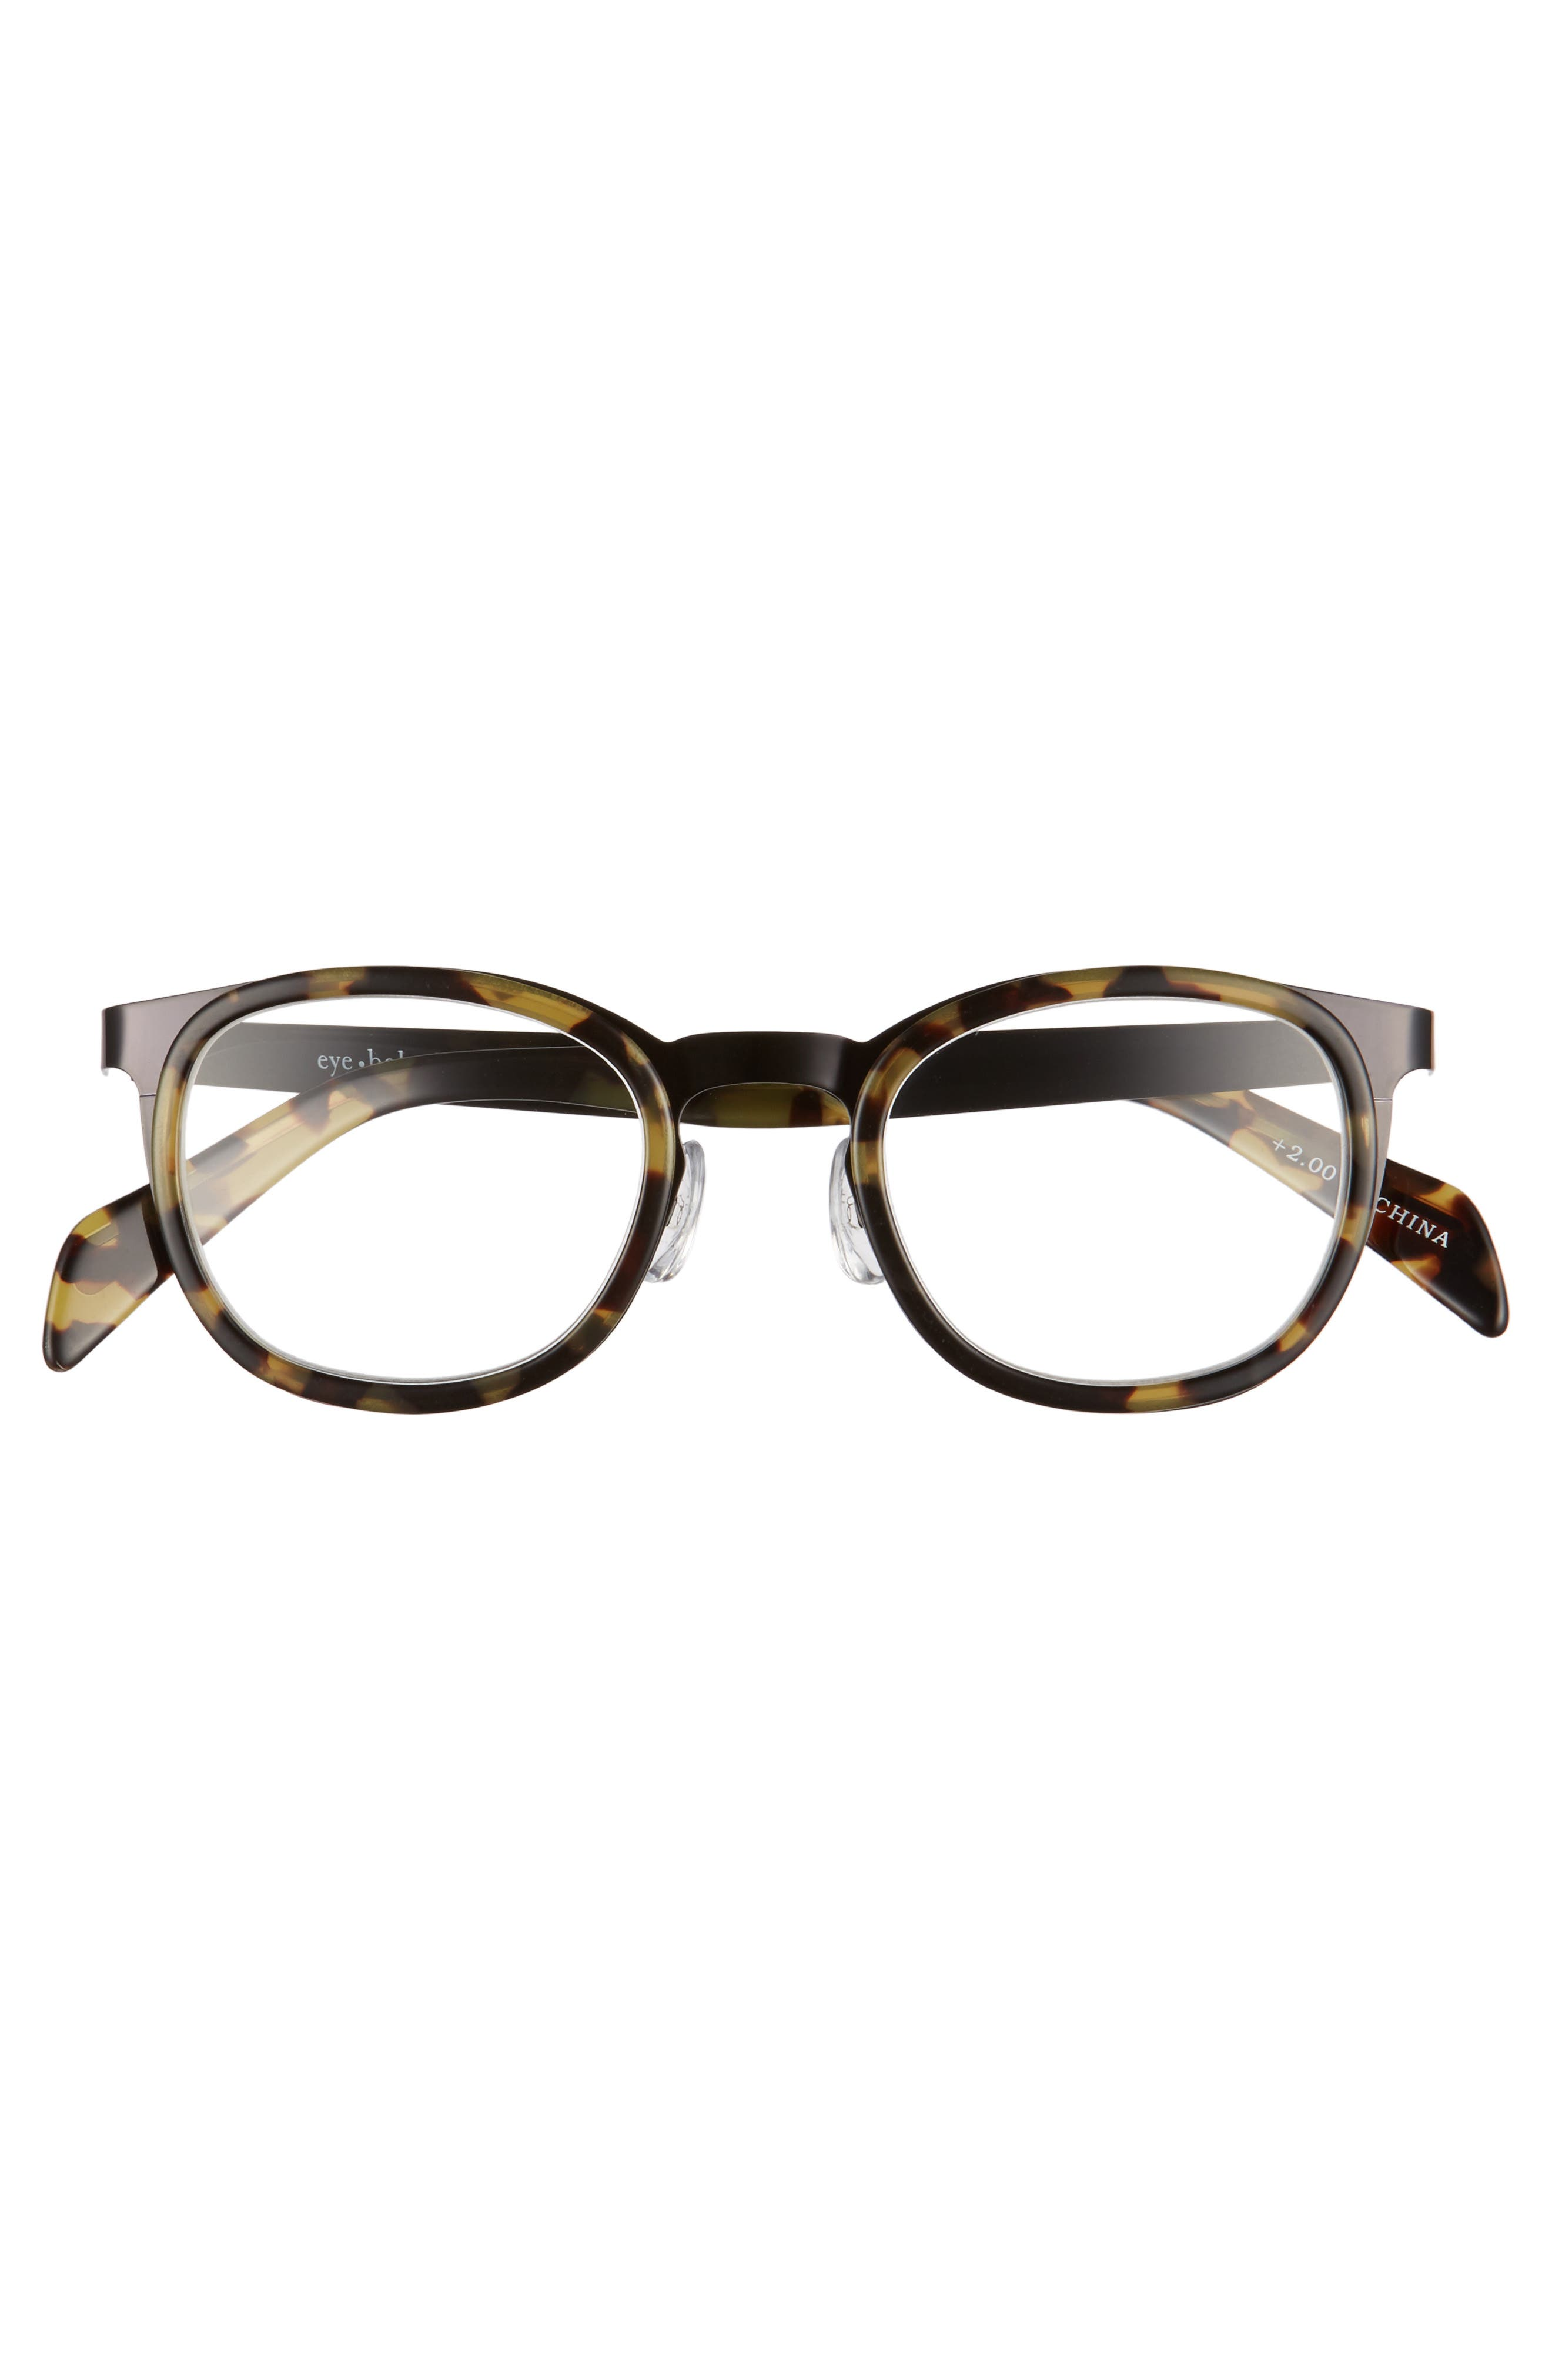 Spank Me 45mm Reading Glasses,                             Alternate thumbnail 2, color,                             BLACK METAL WITH TORTOISE